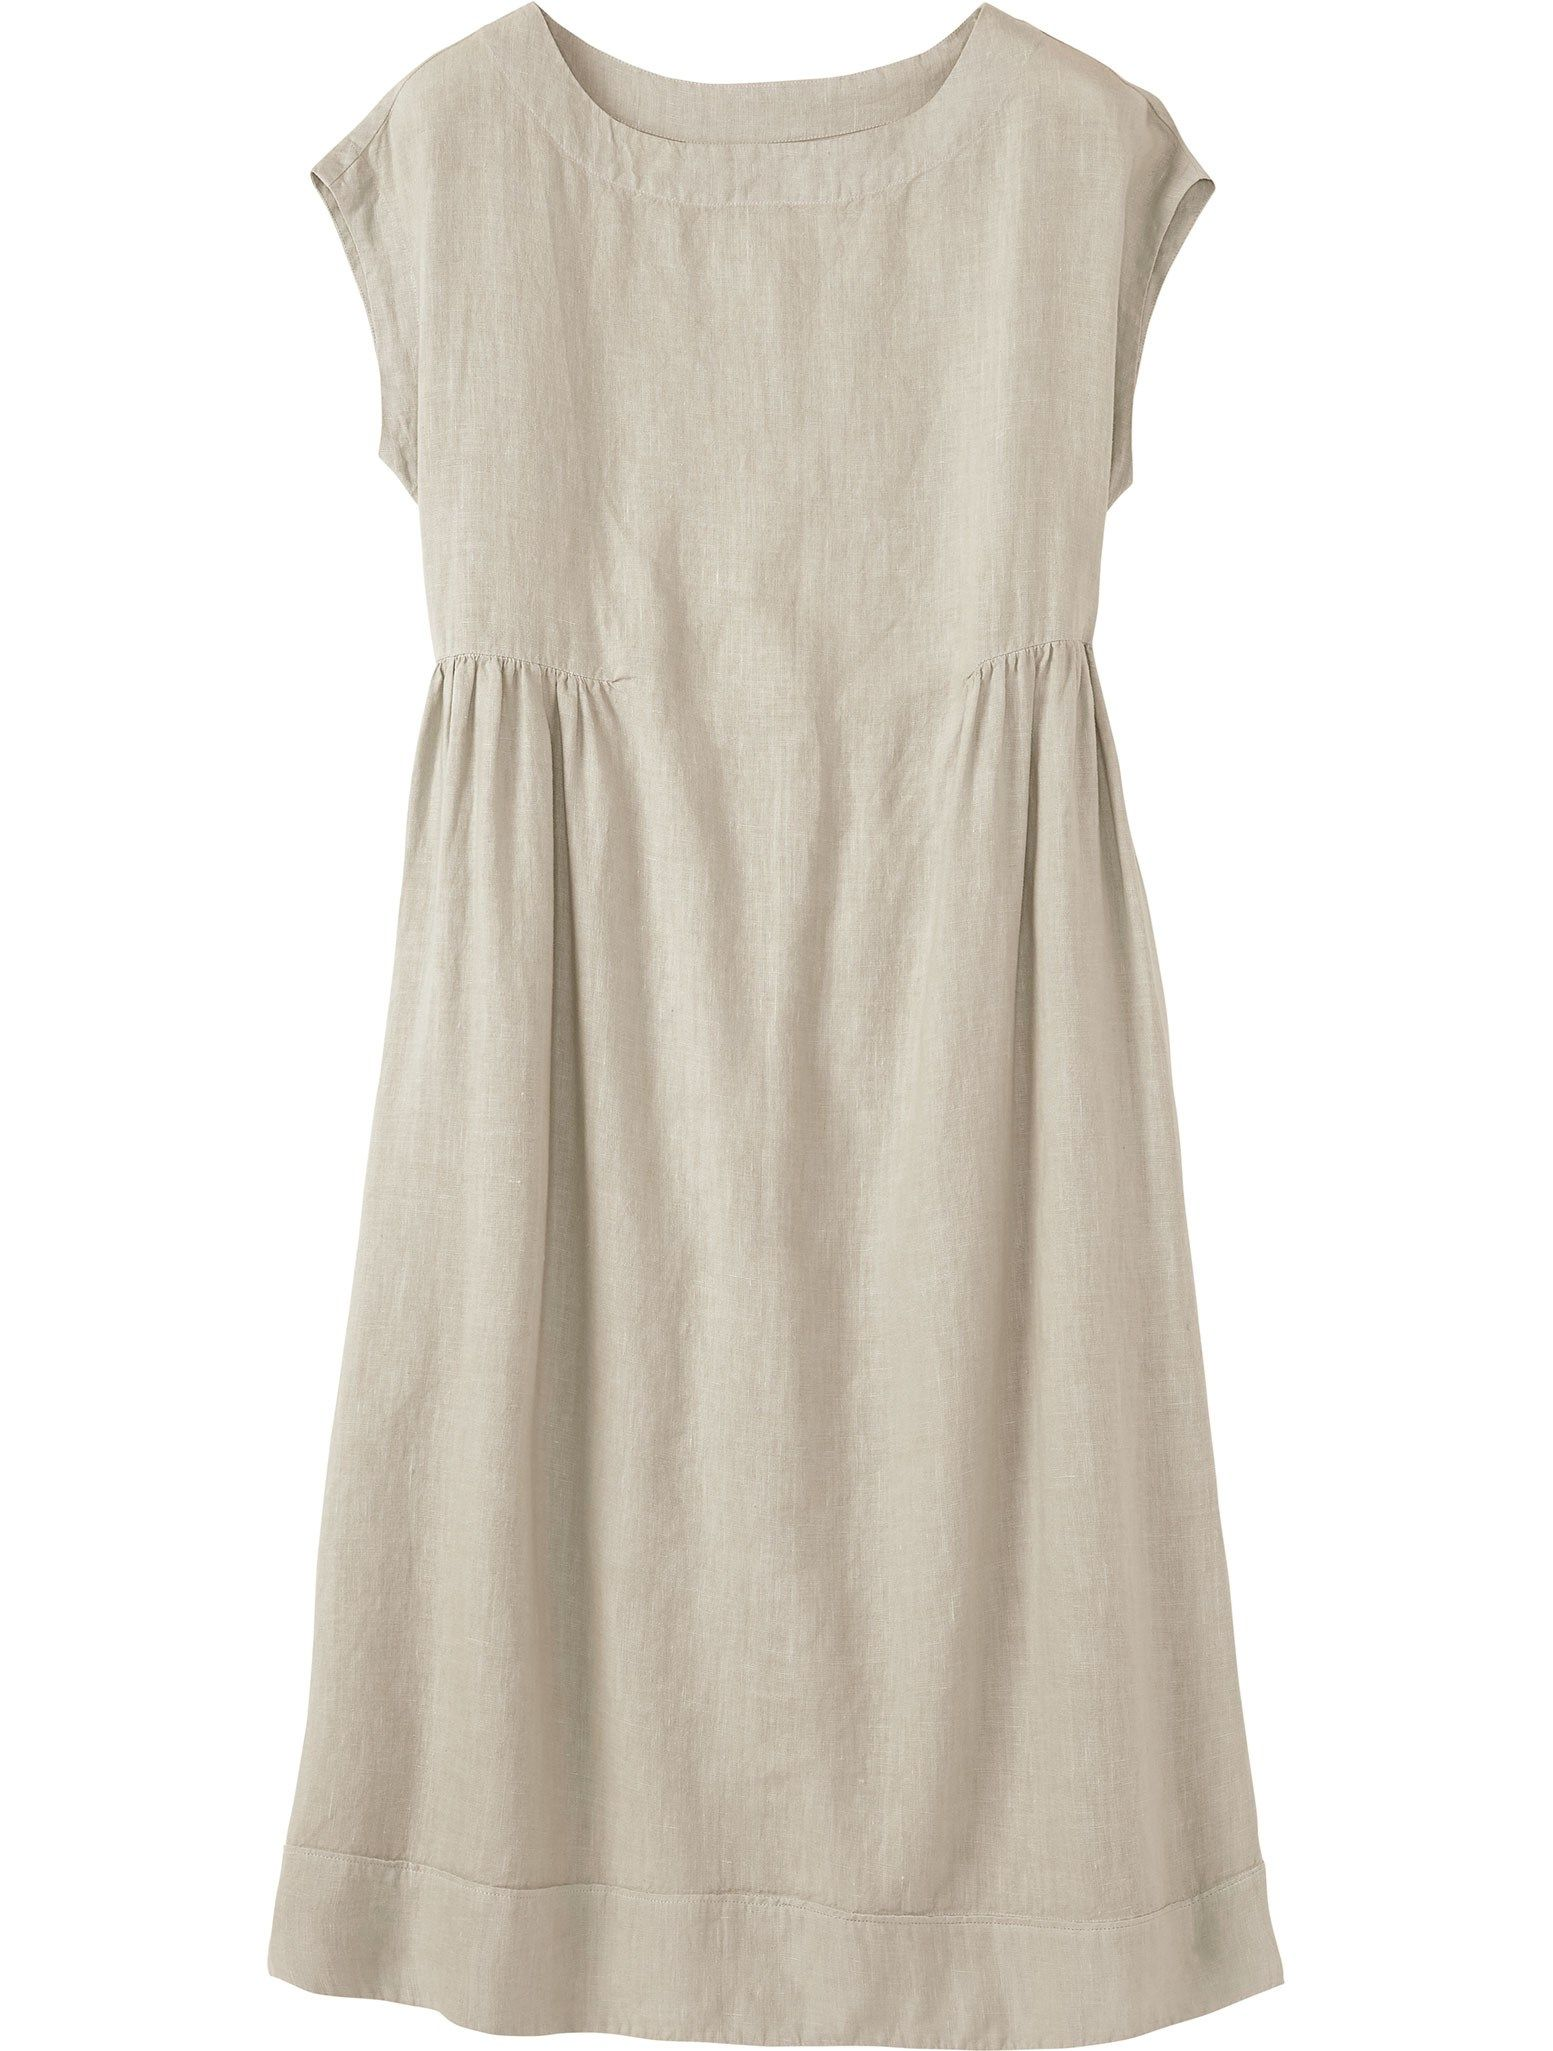 94115061560 Softly shaped midi dress with grown-on cap sleeves in a supple ...